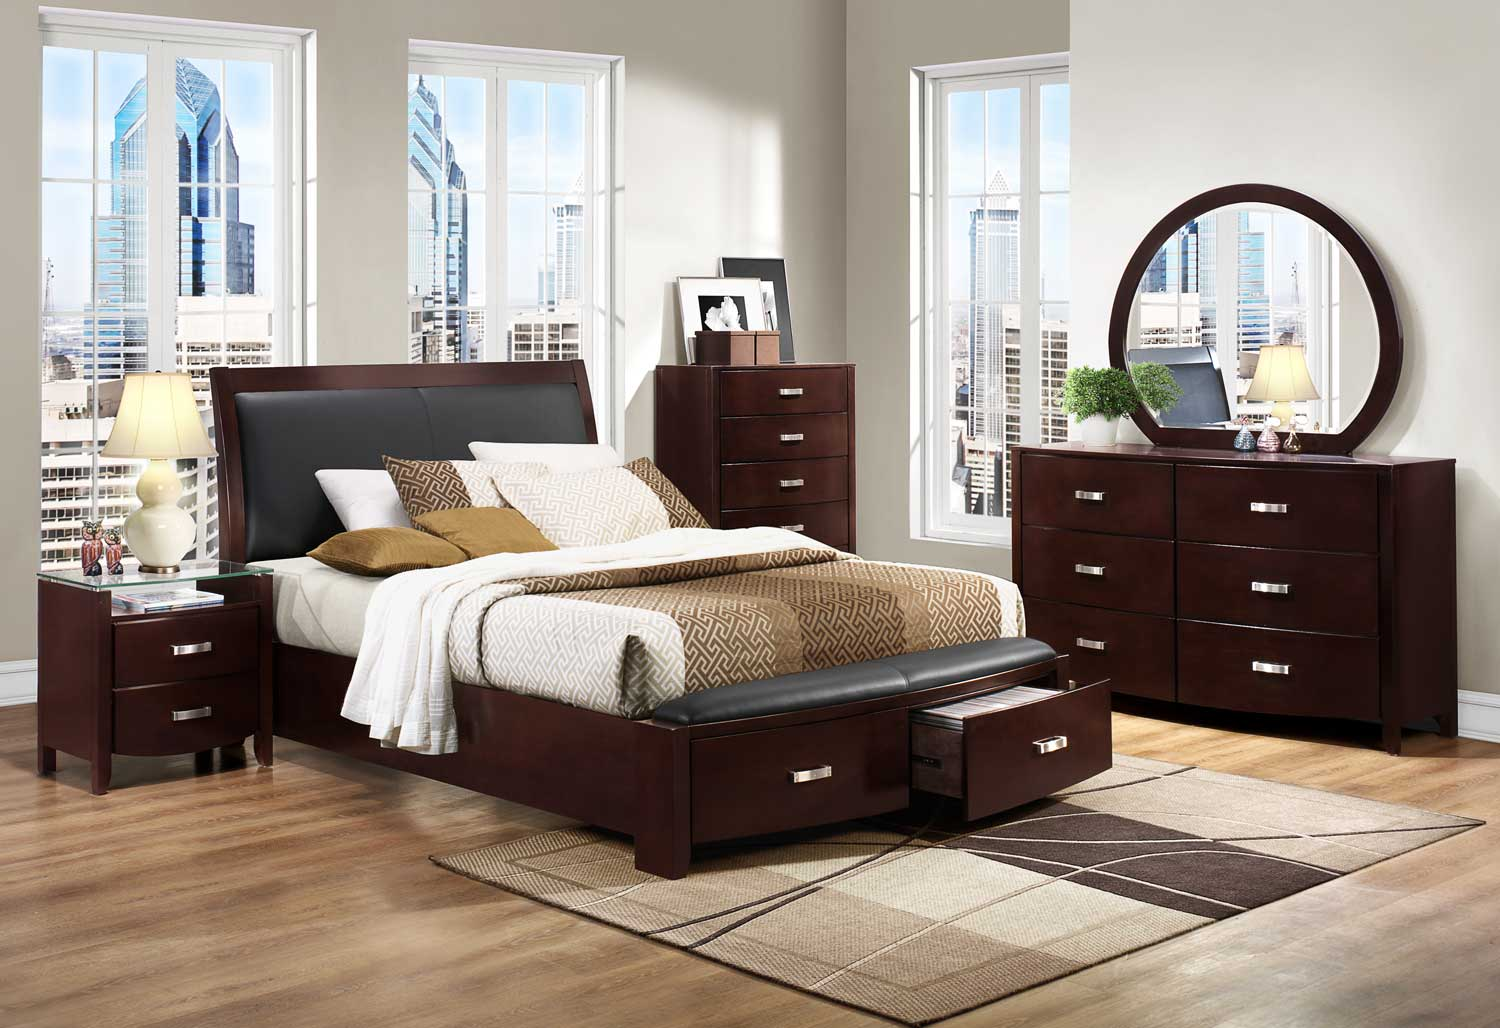 Homelegance Lyric Platform Bedroom Set Dark Espresso B1737nc Bed Set